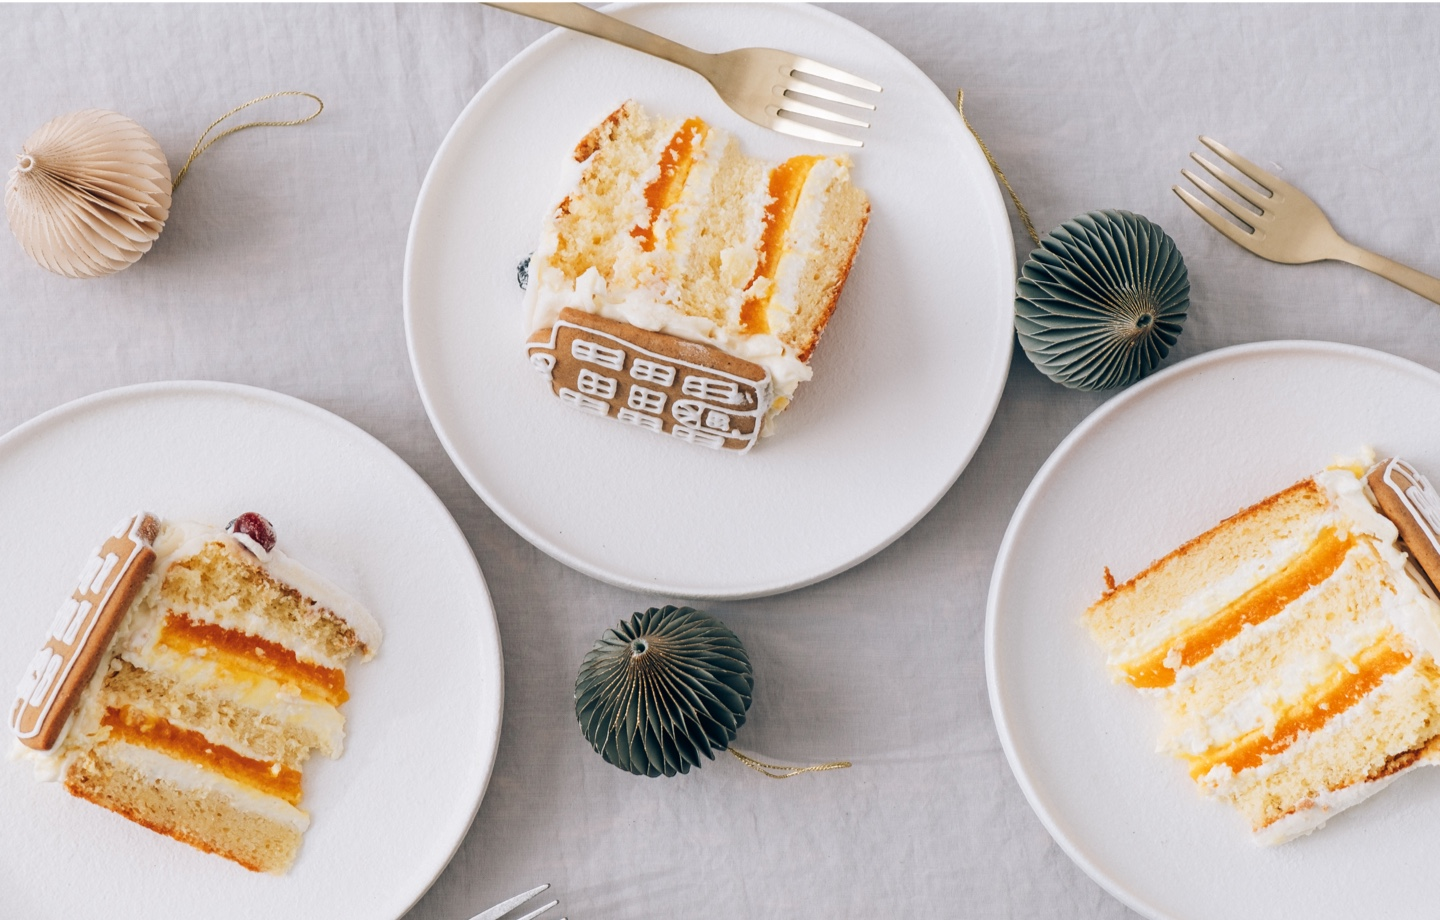 Slices of Orange Gingerbread Cake Header Bakers Against Racism